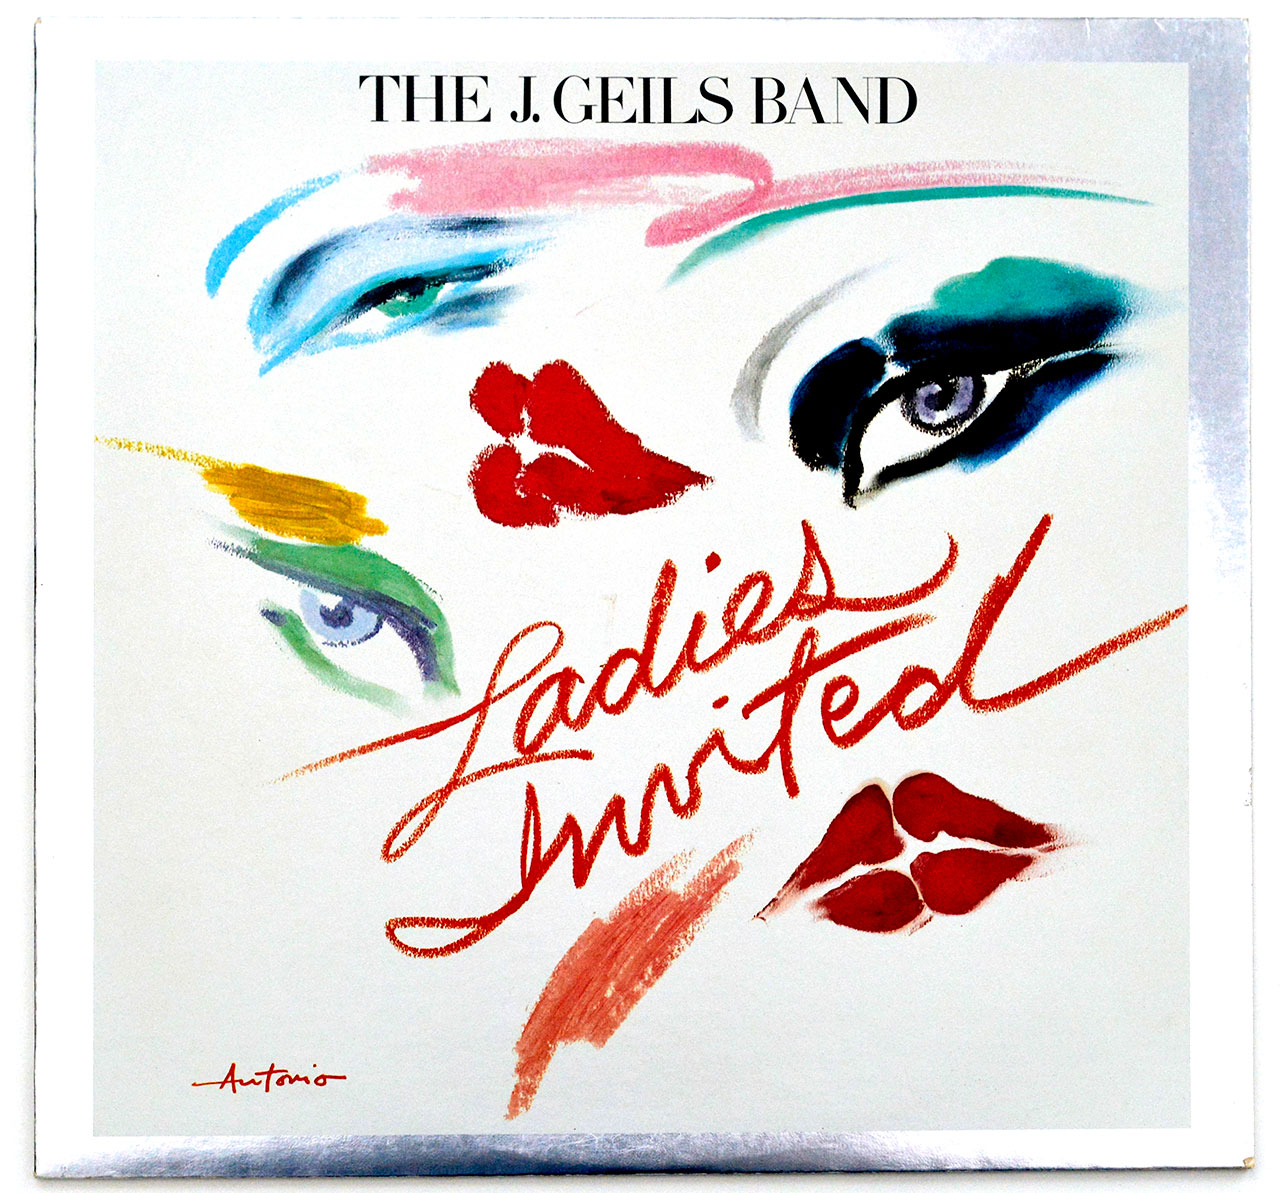 A0705 J. GEILS BAND, THE - Ladies Invited